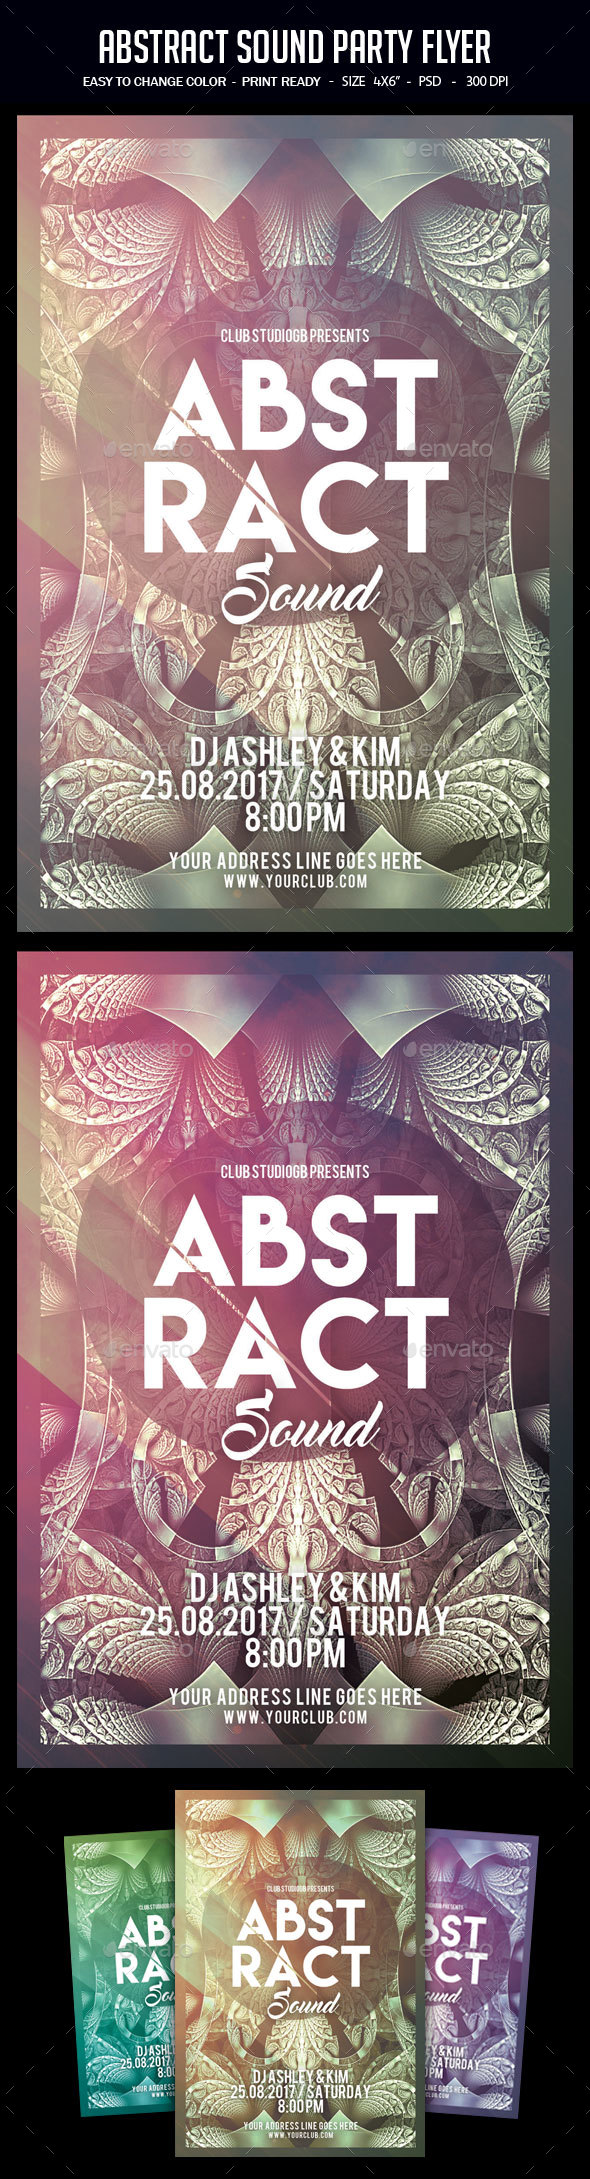 Abstract Sound Party Flyer - Clubs & Parties Events